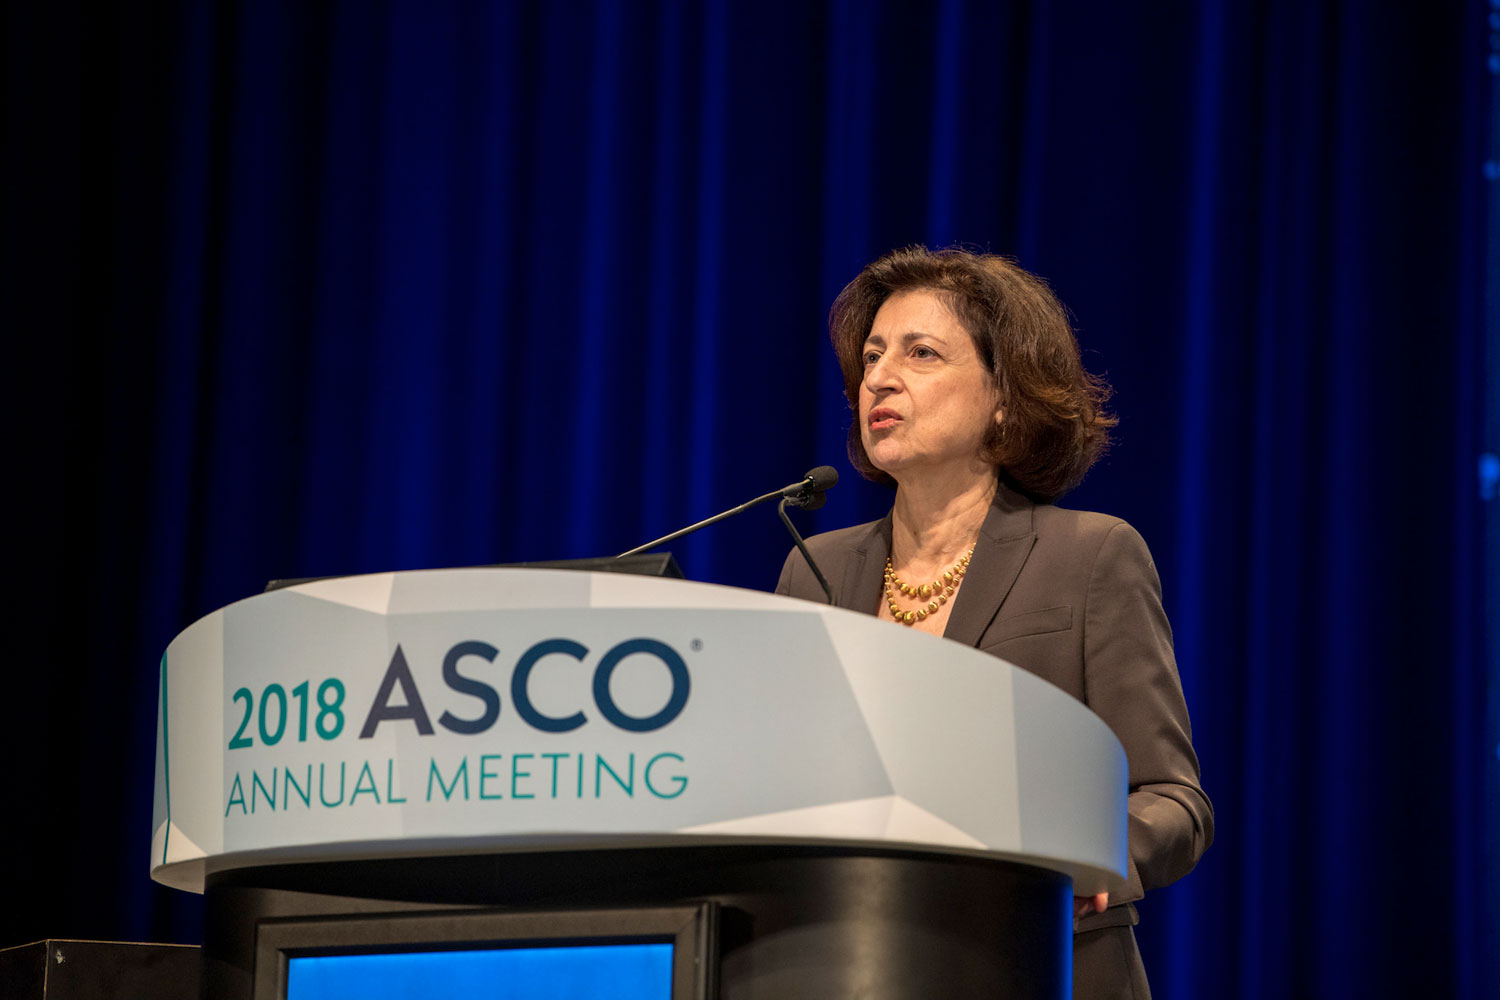 Suzanne Topalian speaking at ASCO18